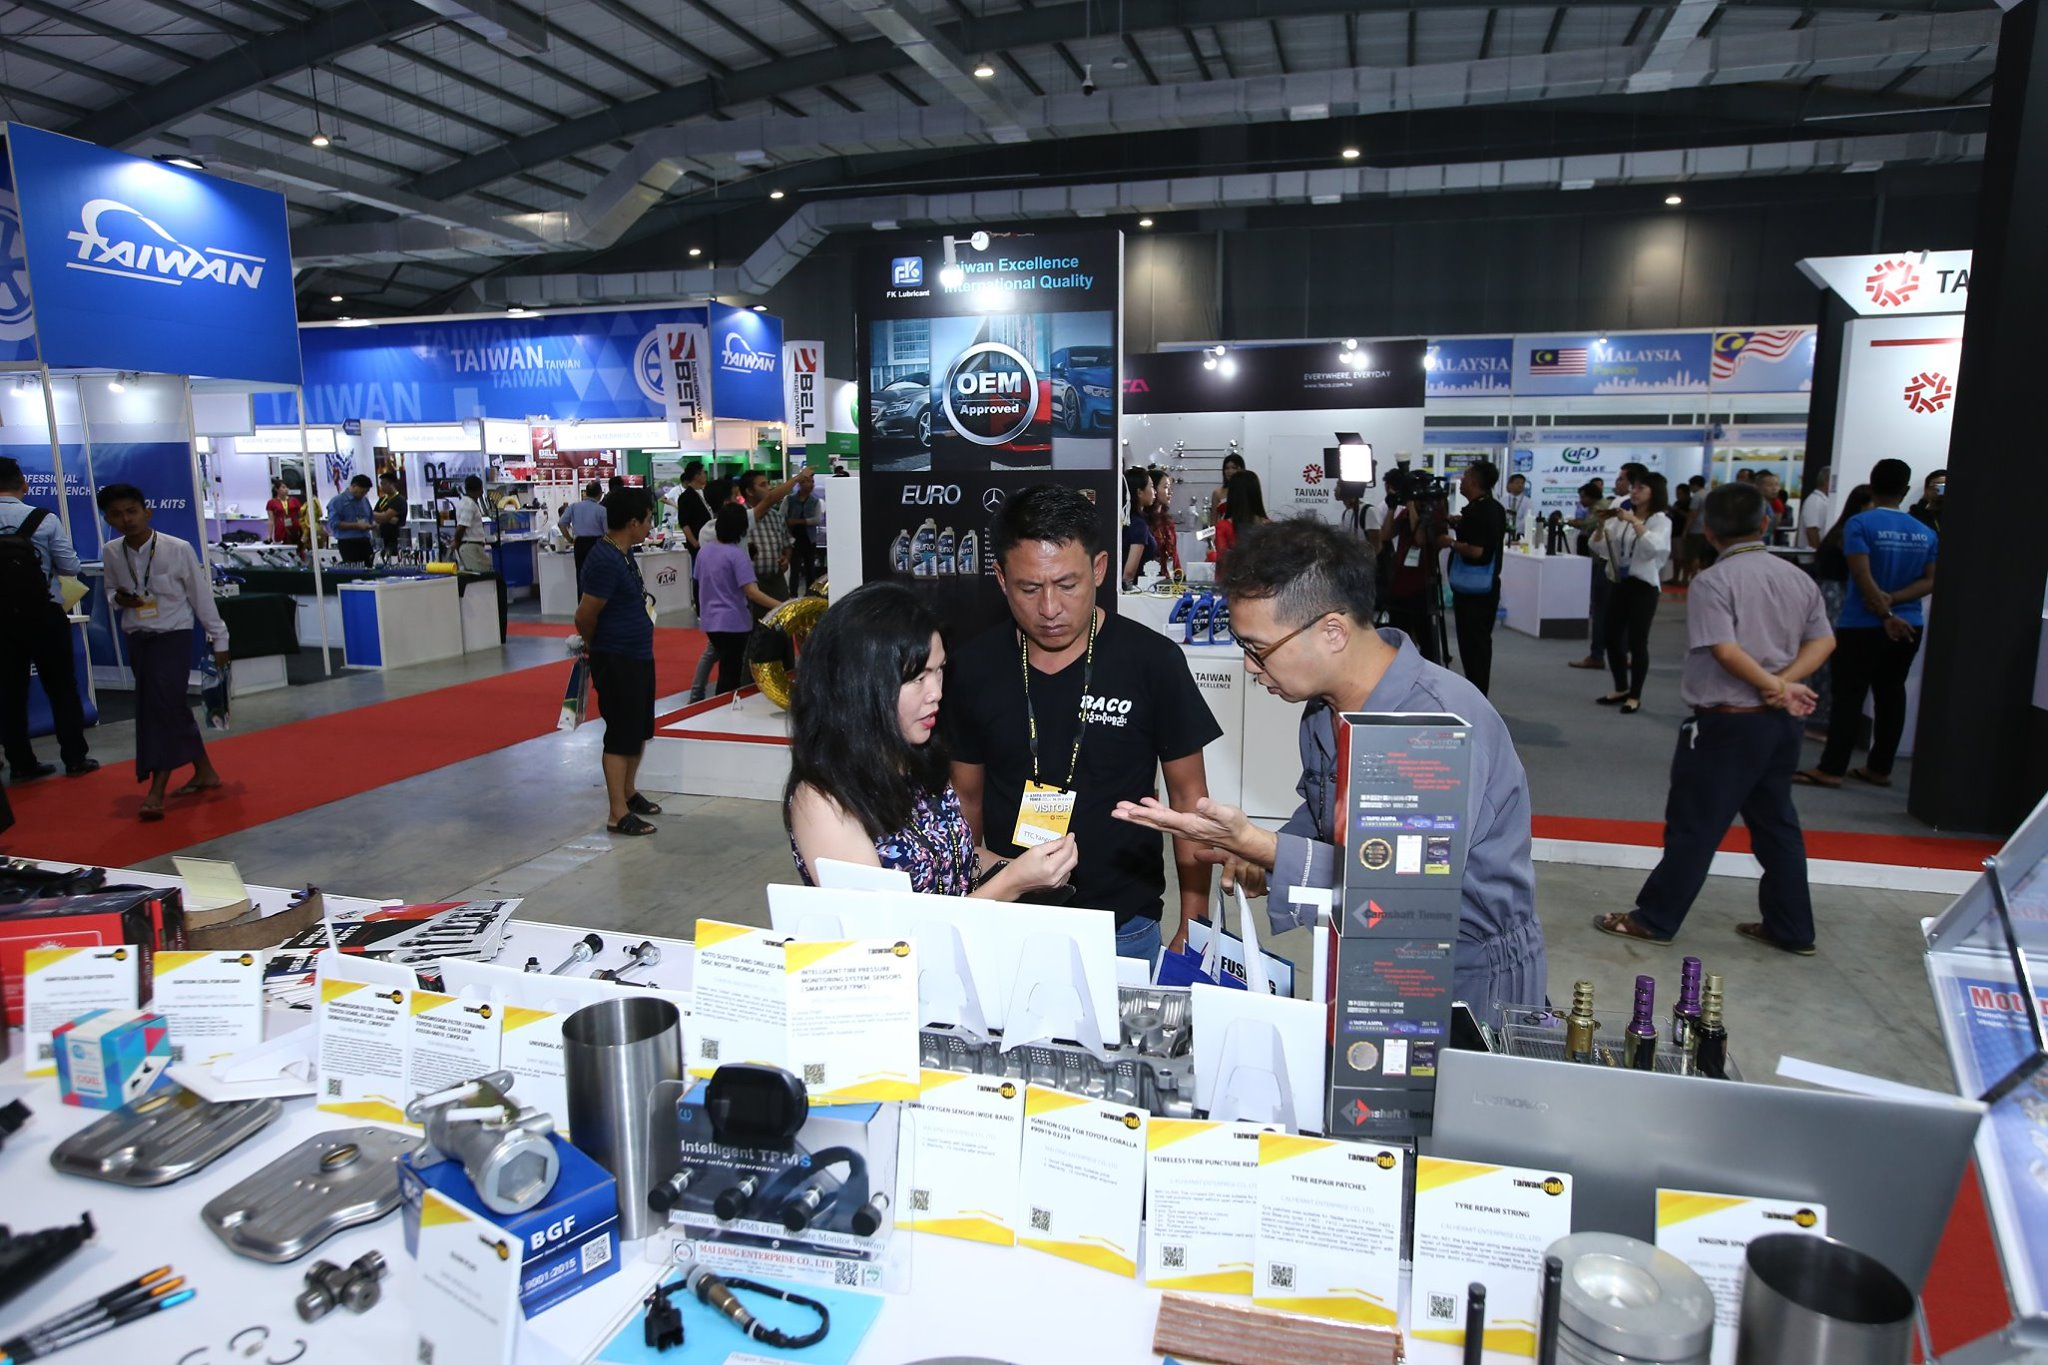 https://storage.googleapis.com/www.taiwantradeshow.com.tw/model/photo/EA/2019/PH00037769-name.jpg